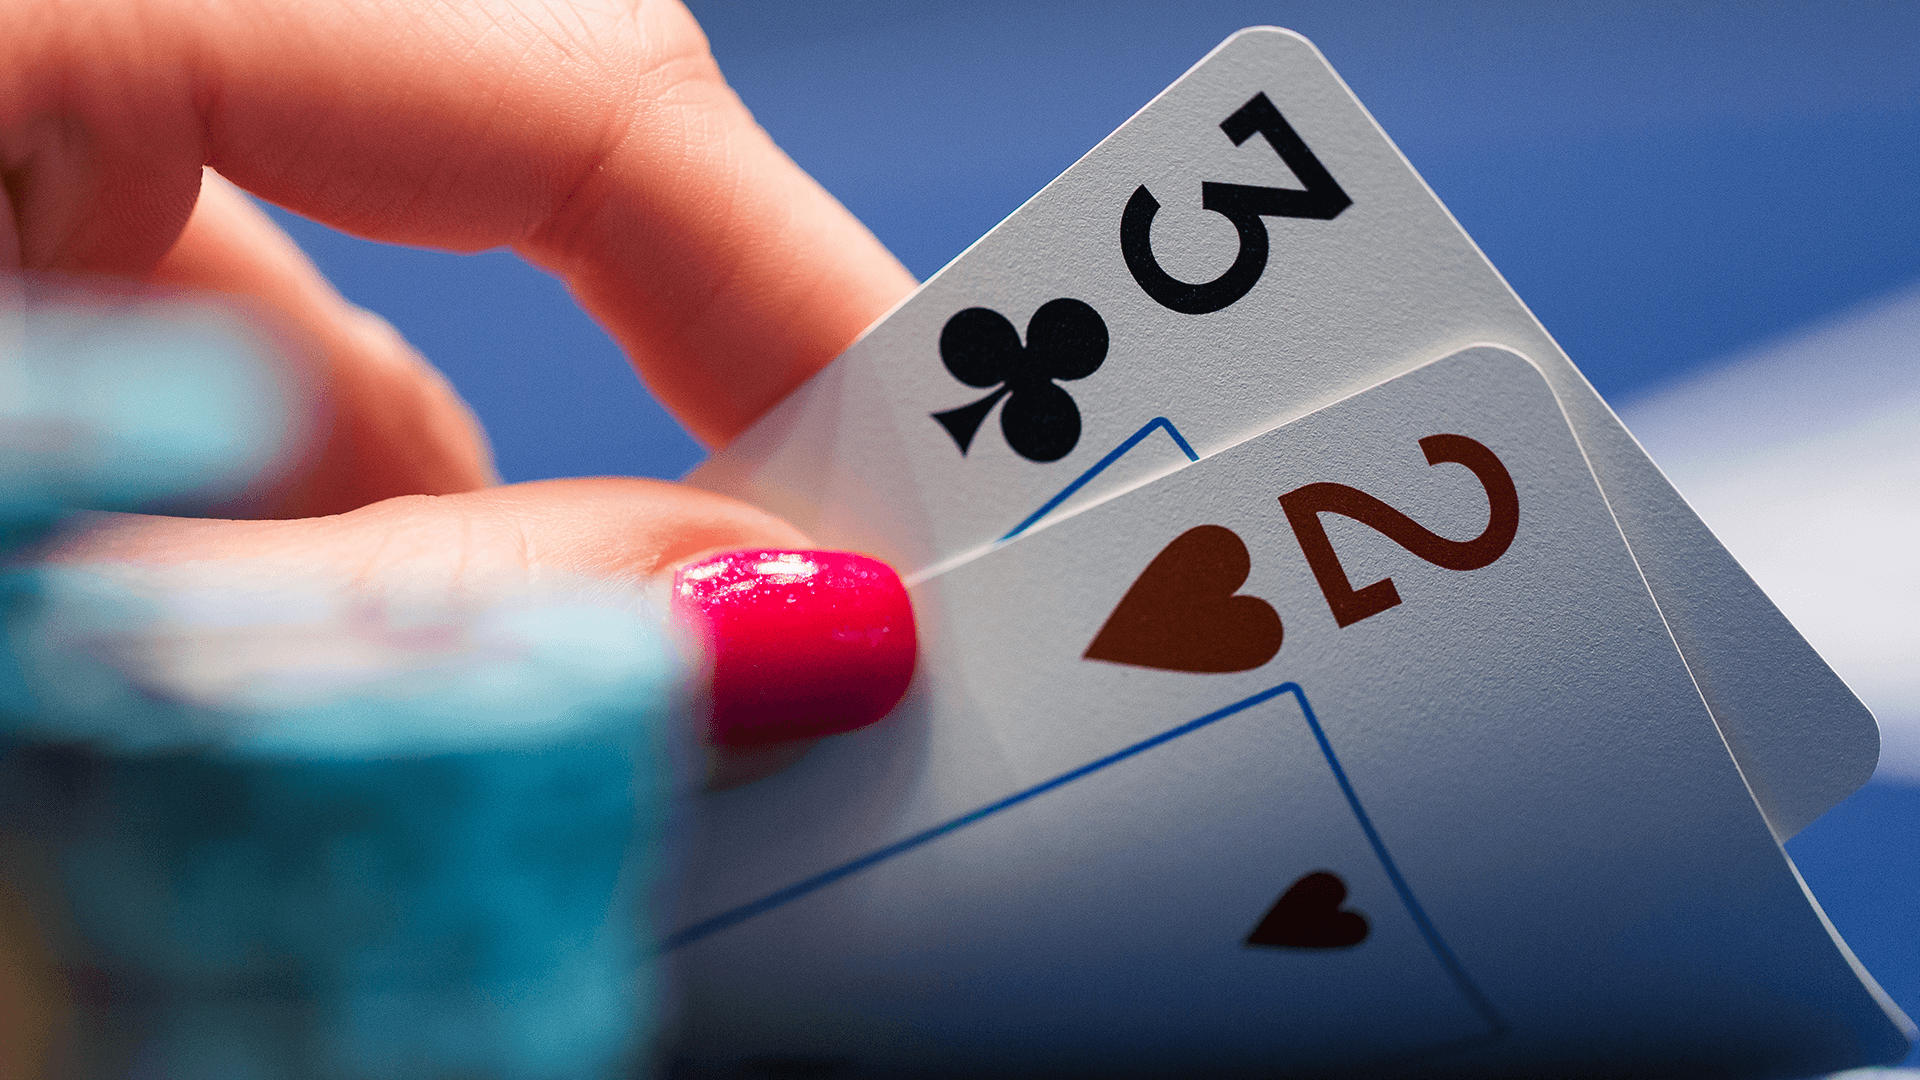 Evaluating Winning Poker Hands